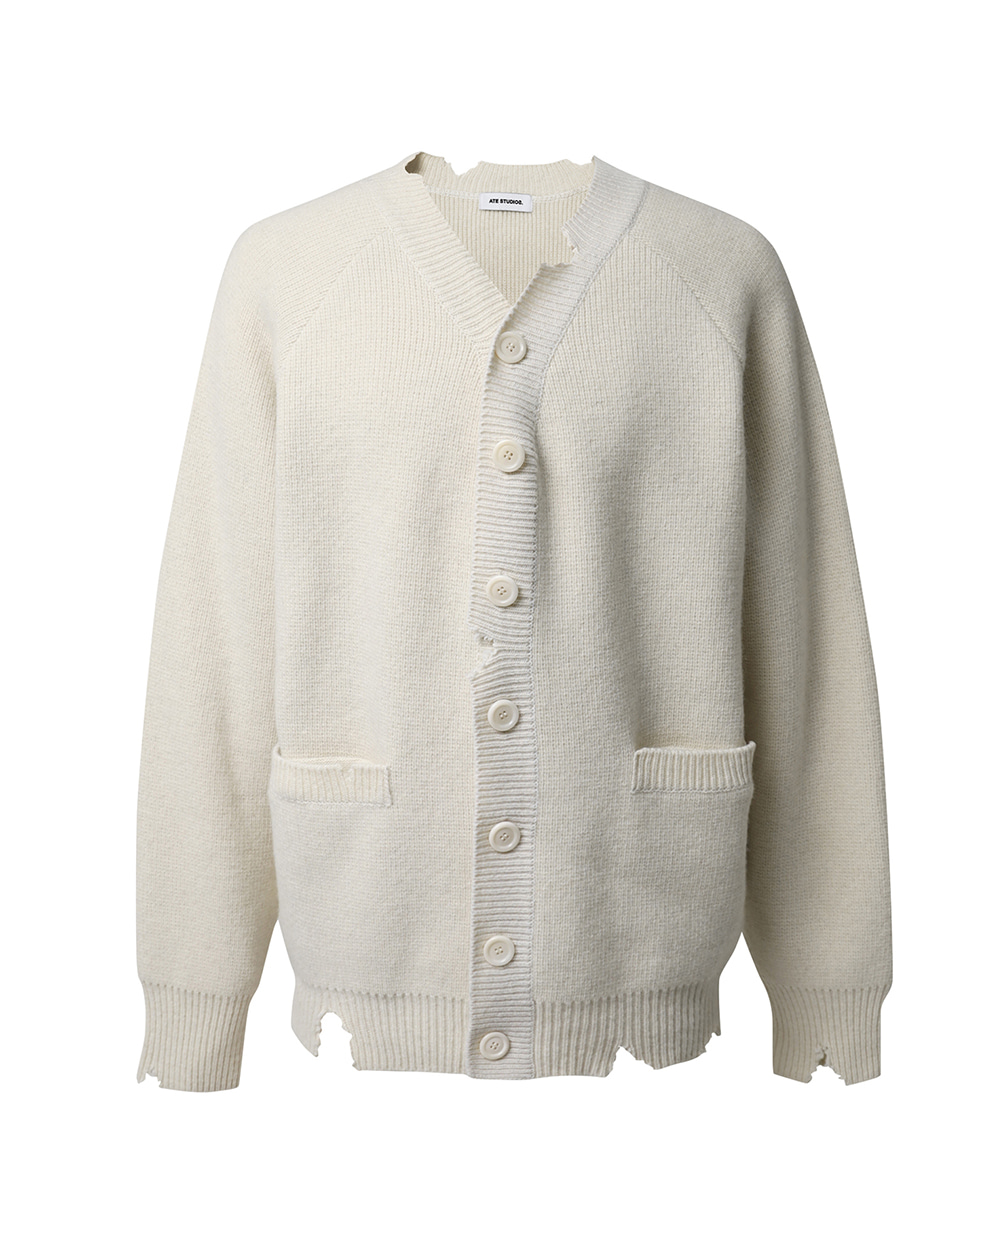 ATE STUDIOS PULLED OUT LAMBSWOOL CARDIGAN (O.White)